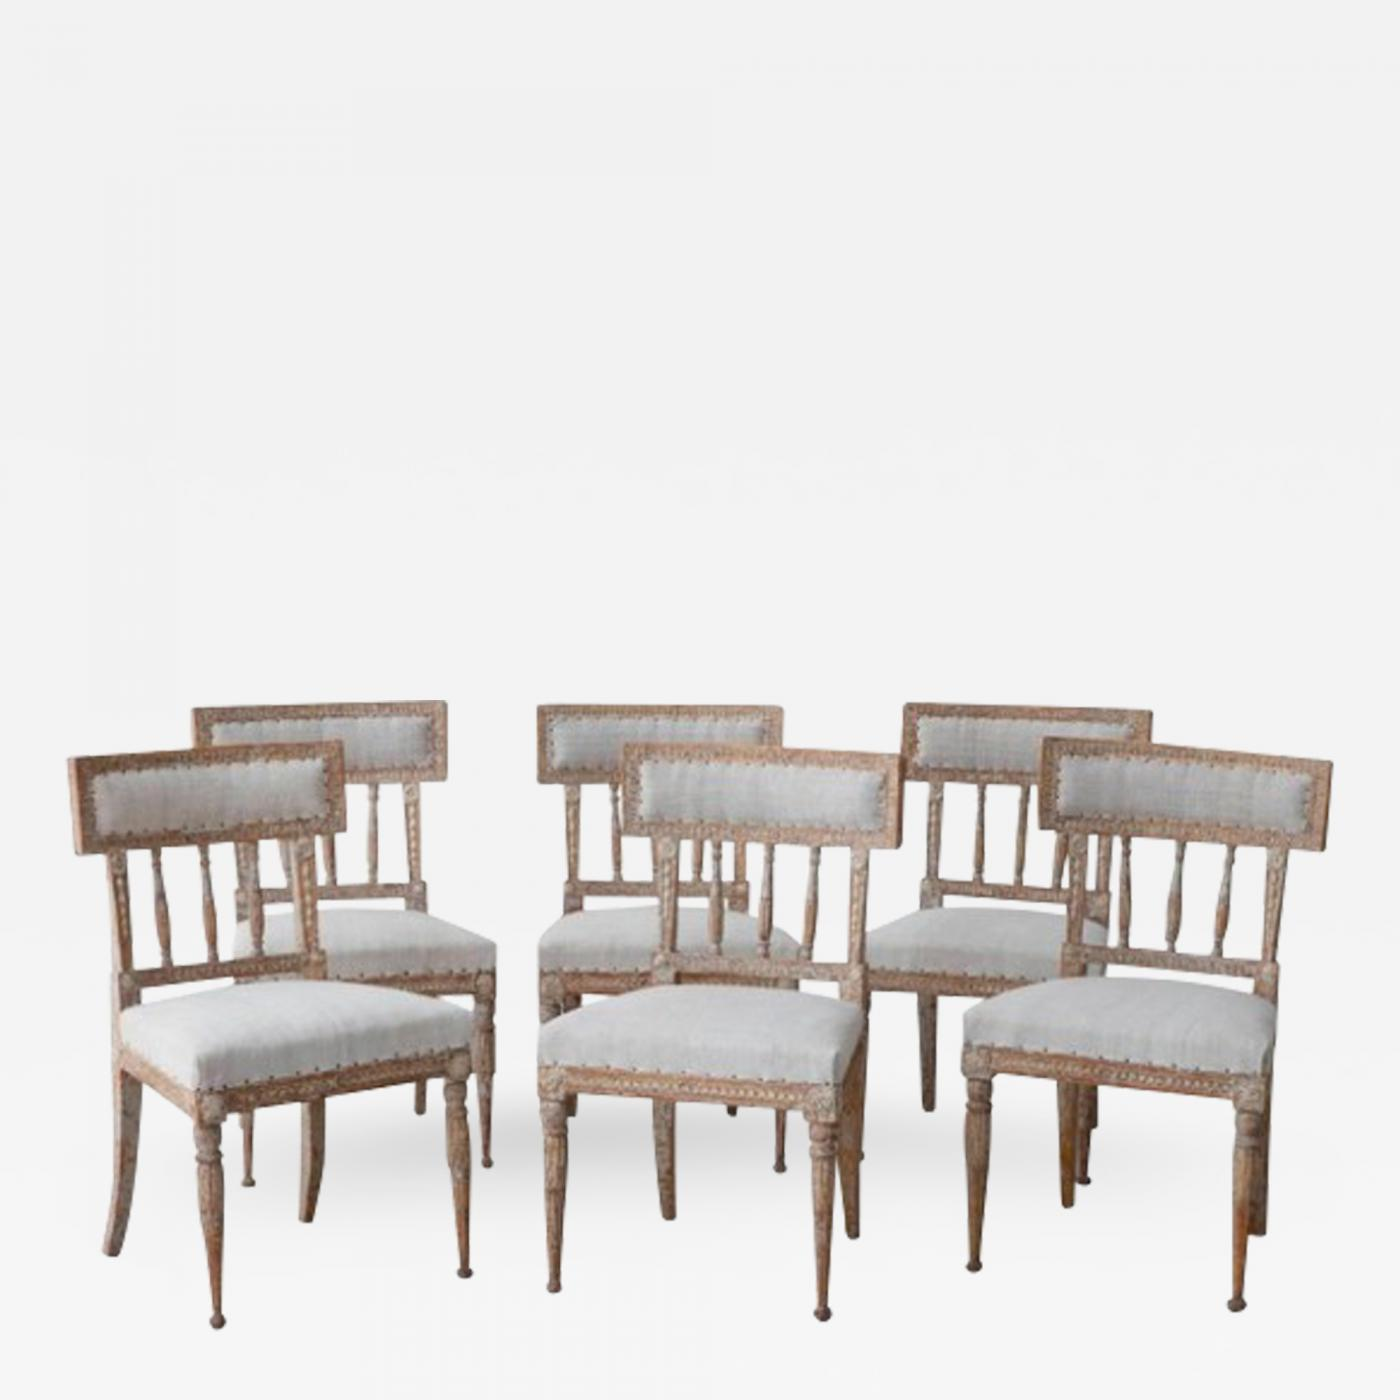 19th Century Set Of Six Swedish Gustavian Period Chairs In Original